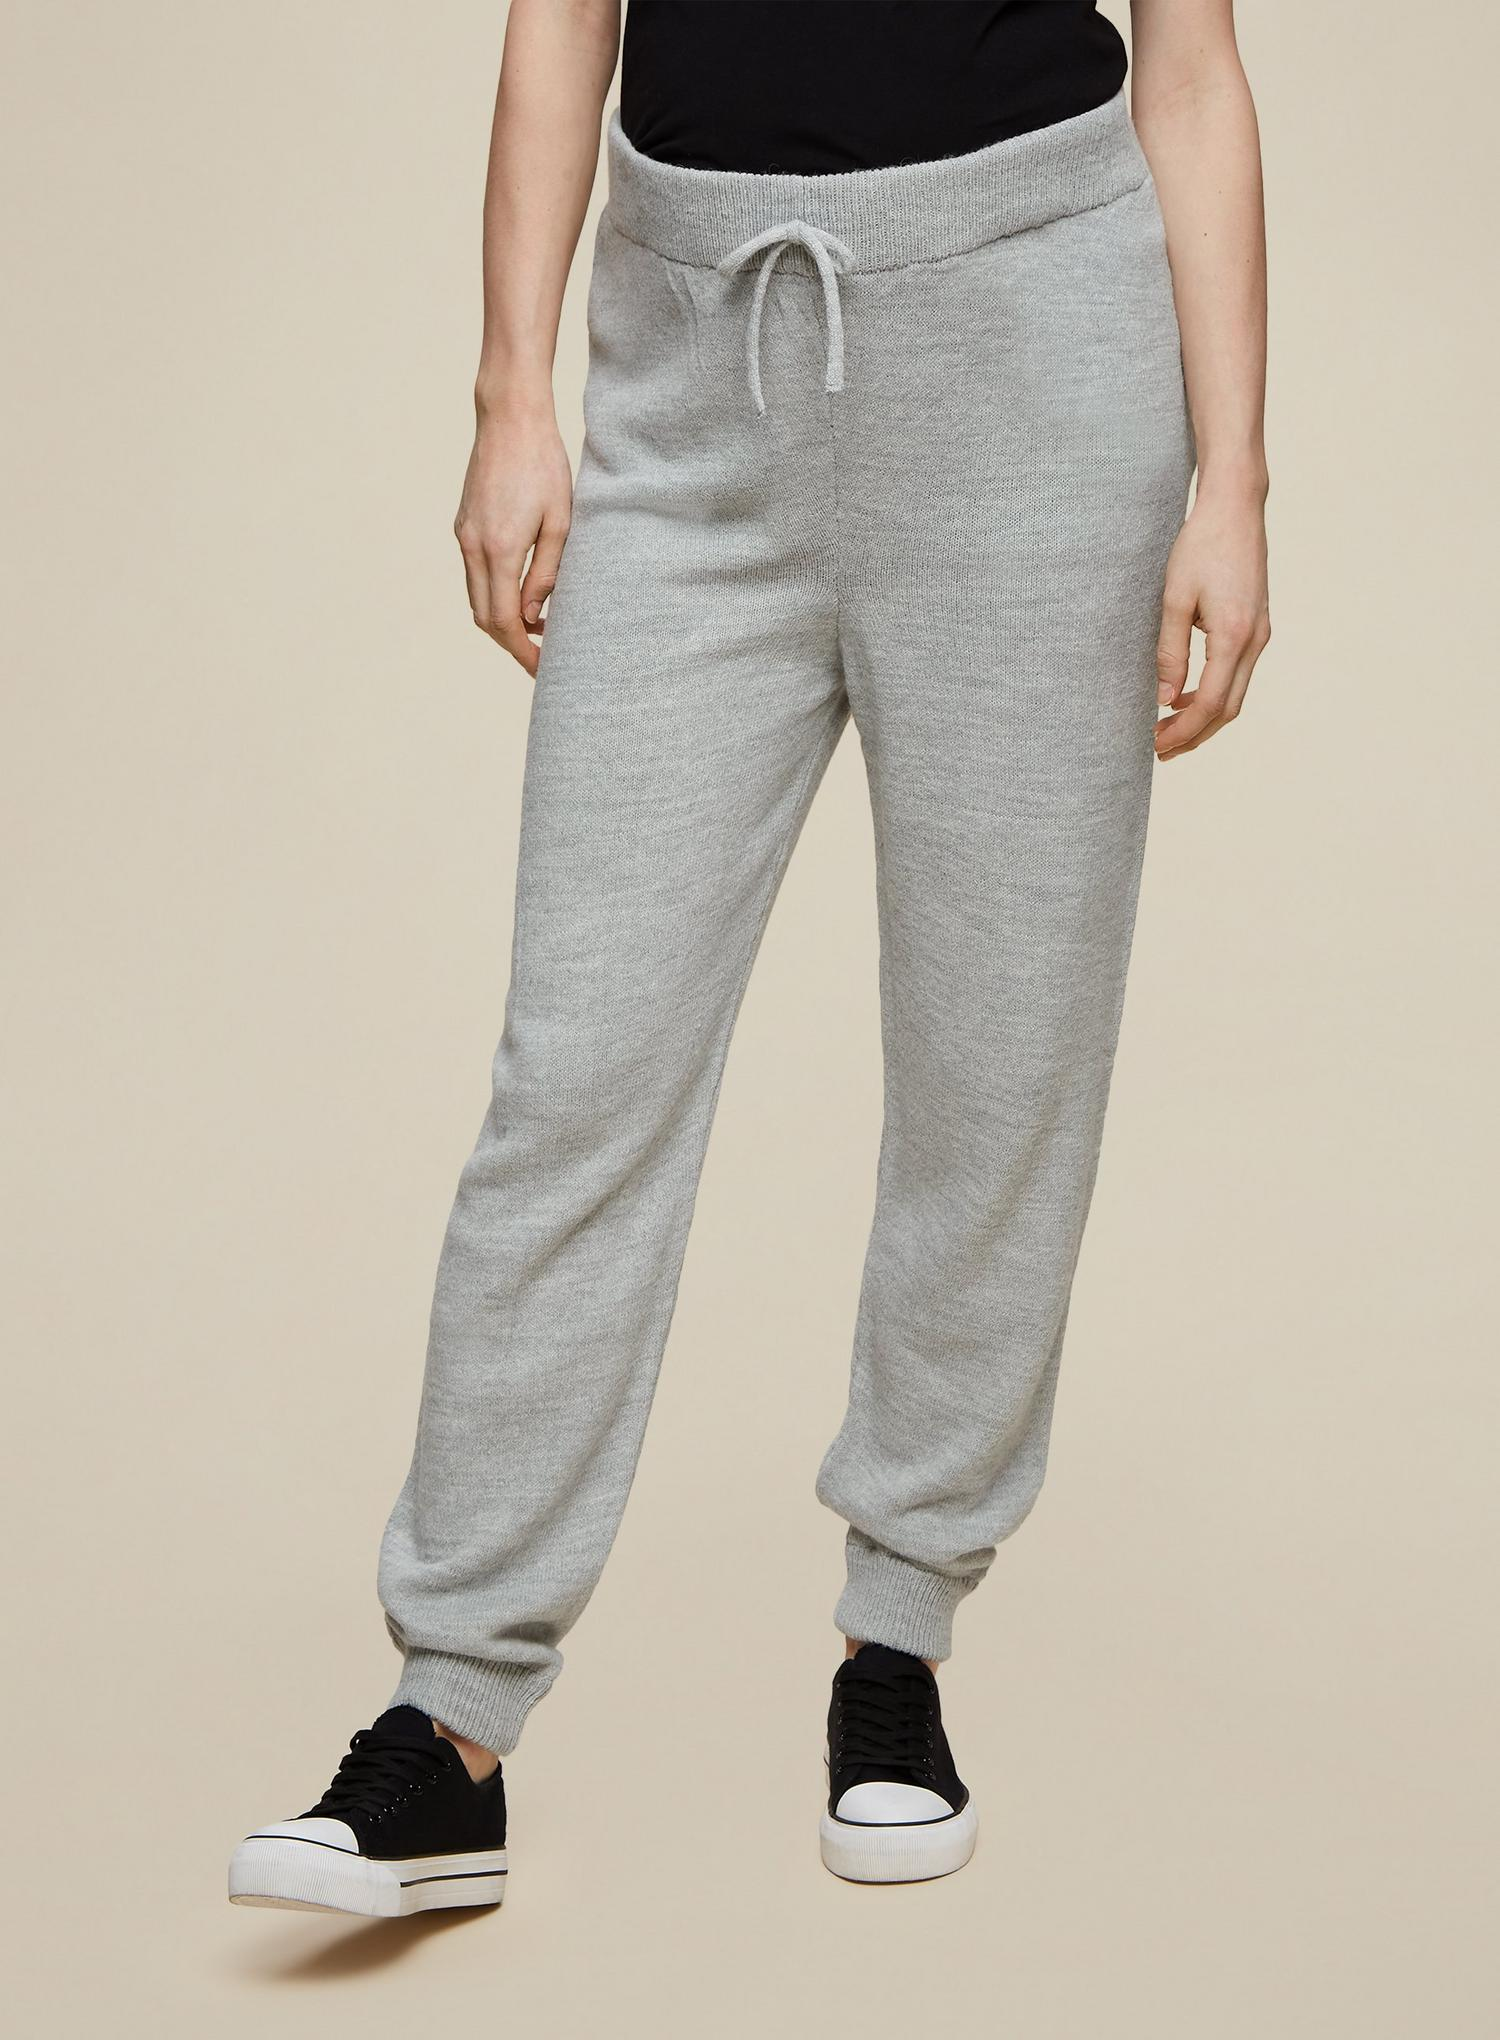 131 Maternity Grey Joggers image number 1